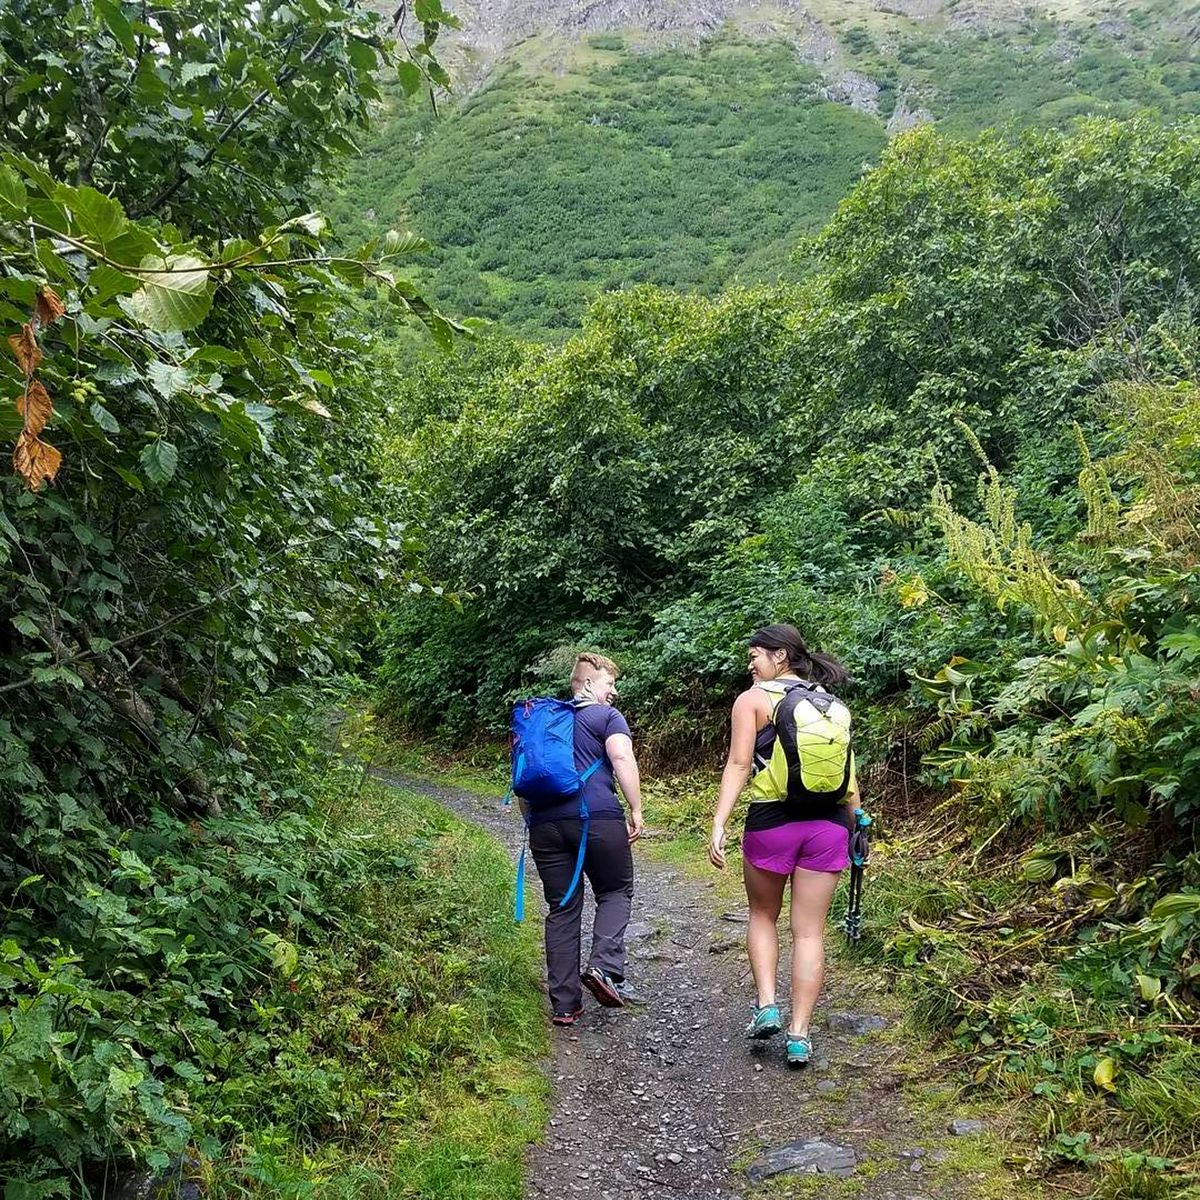 Toni Clark, left, and I started from Girdwood on the Crow Pass trail early Thursday, July 28, 2016, heading toward the Eagle River Nature Center. This was before I tried to bring her down with me while crossing the Eagle River. (Julia Terry)